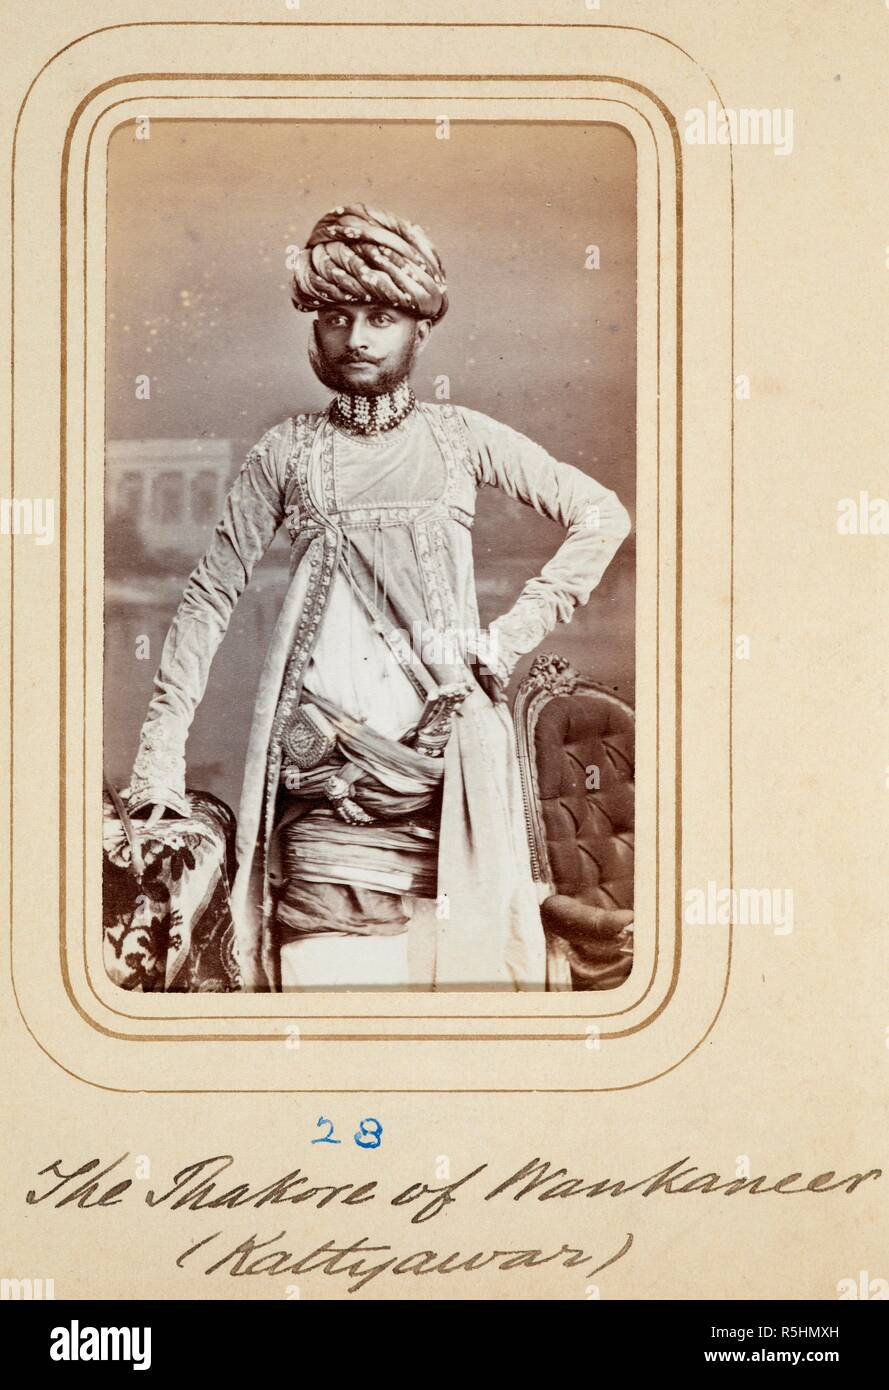 A Three Quarter Length Standing Carte De Visite Portrait Album Of Cartes Portraits Indian Rulers And Notables Early 1870s Photograph